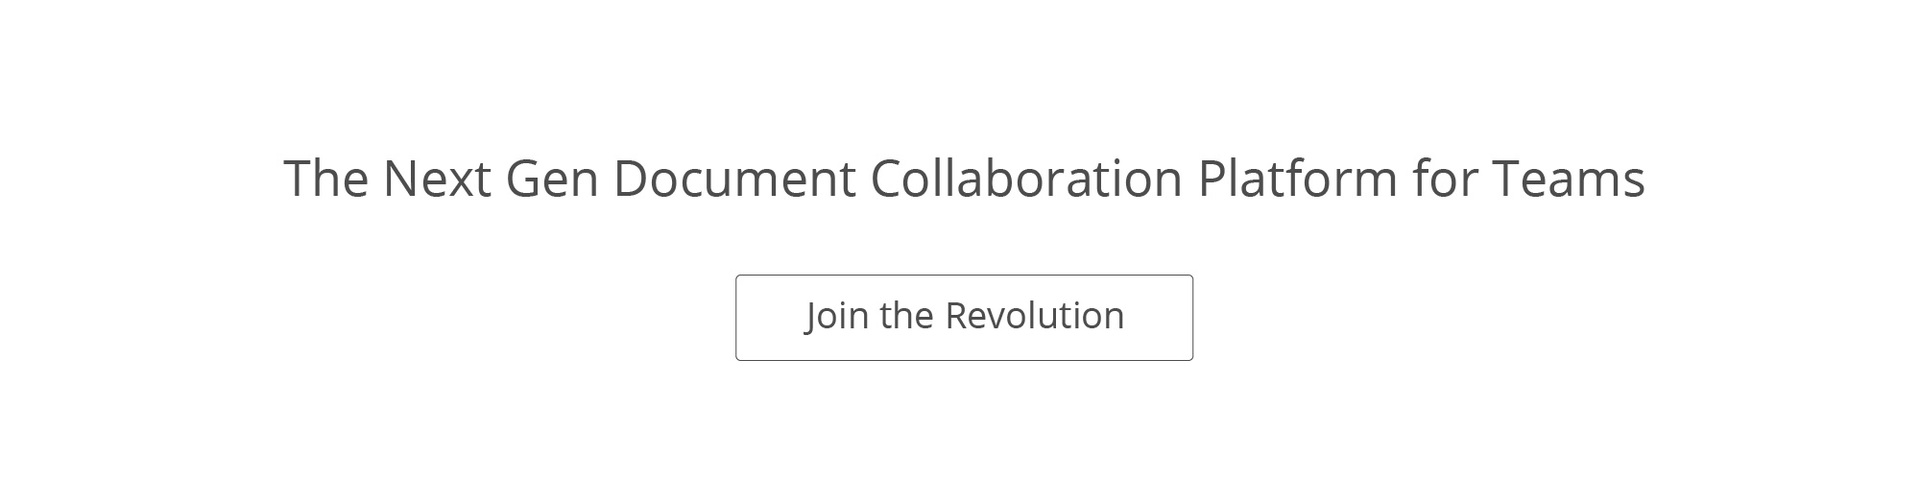 Bit.ai document collaboration platform